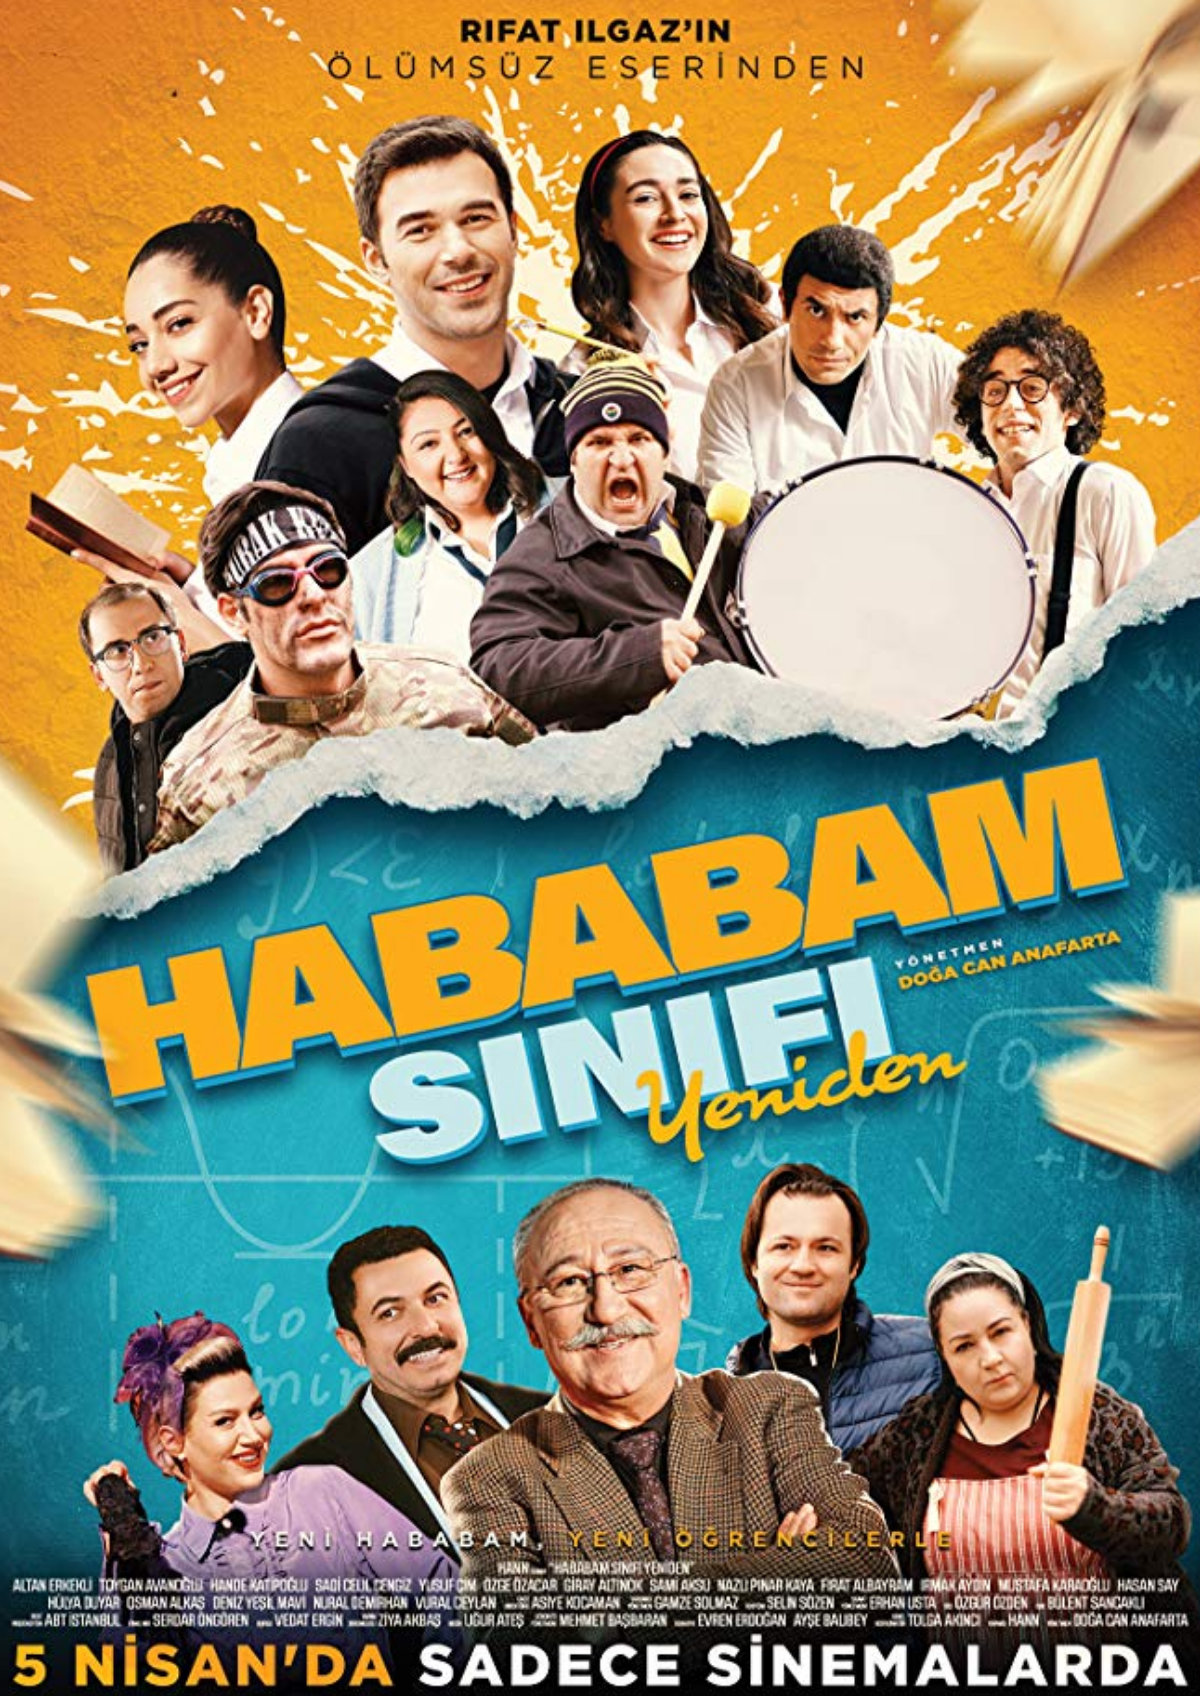 'Hababam Sinifi Yeniden' movie poster